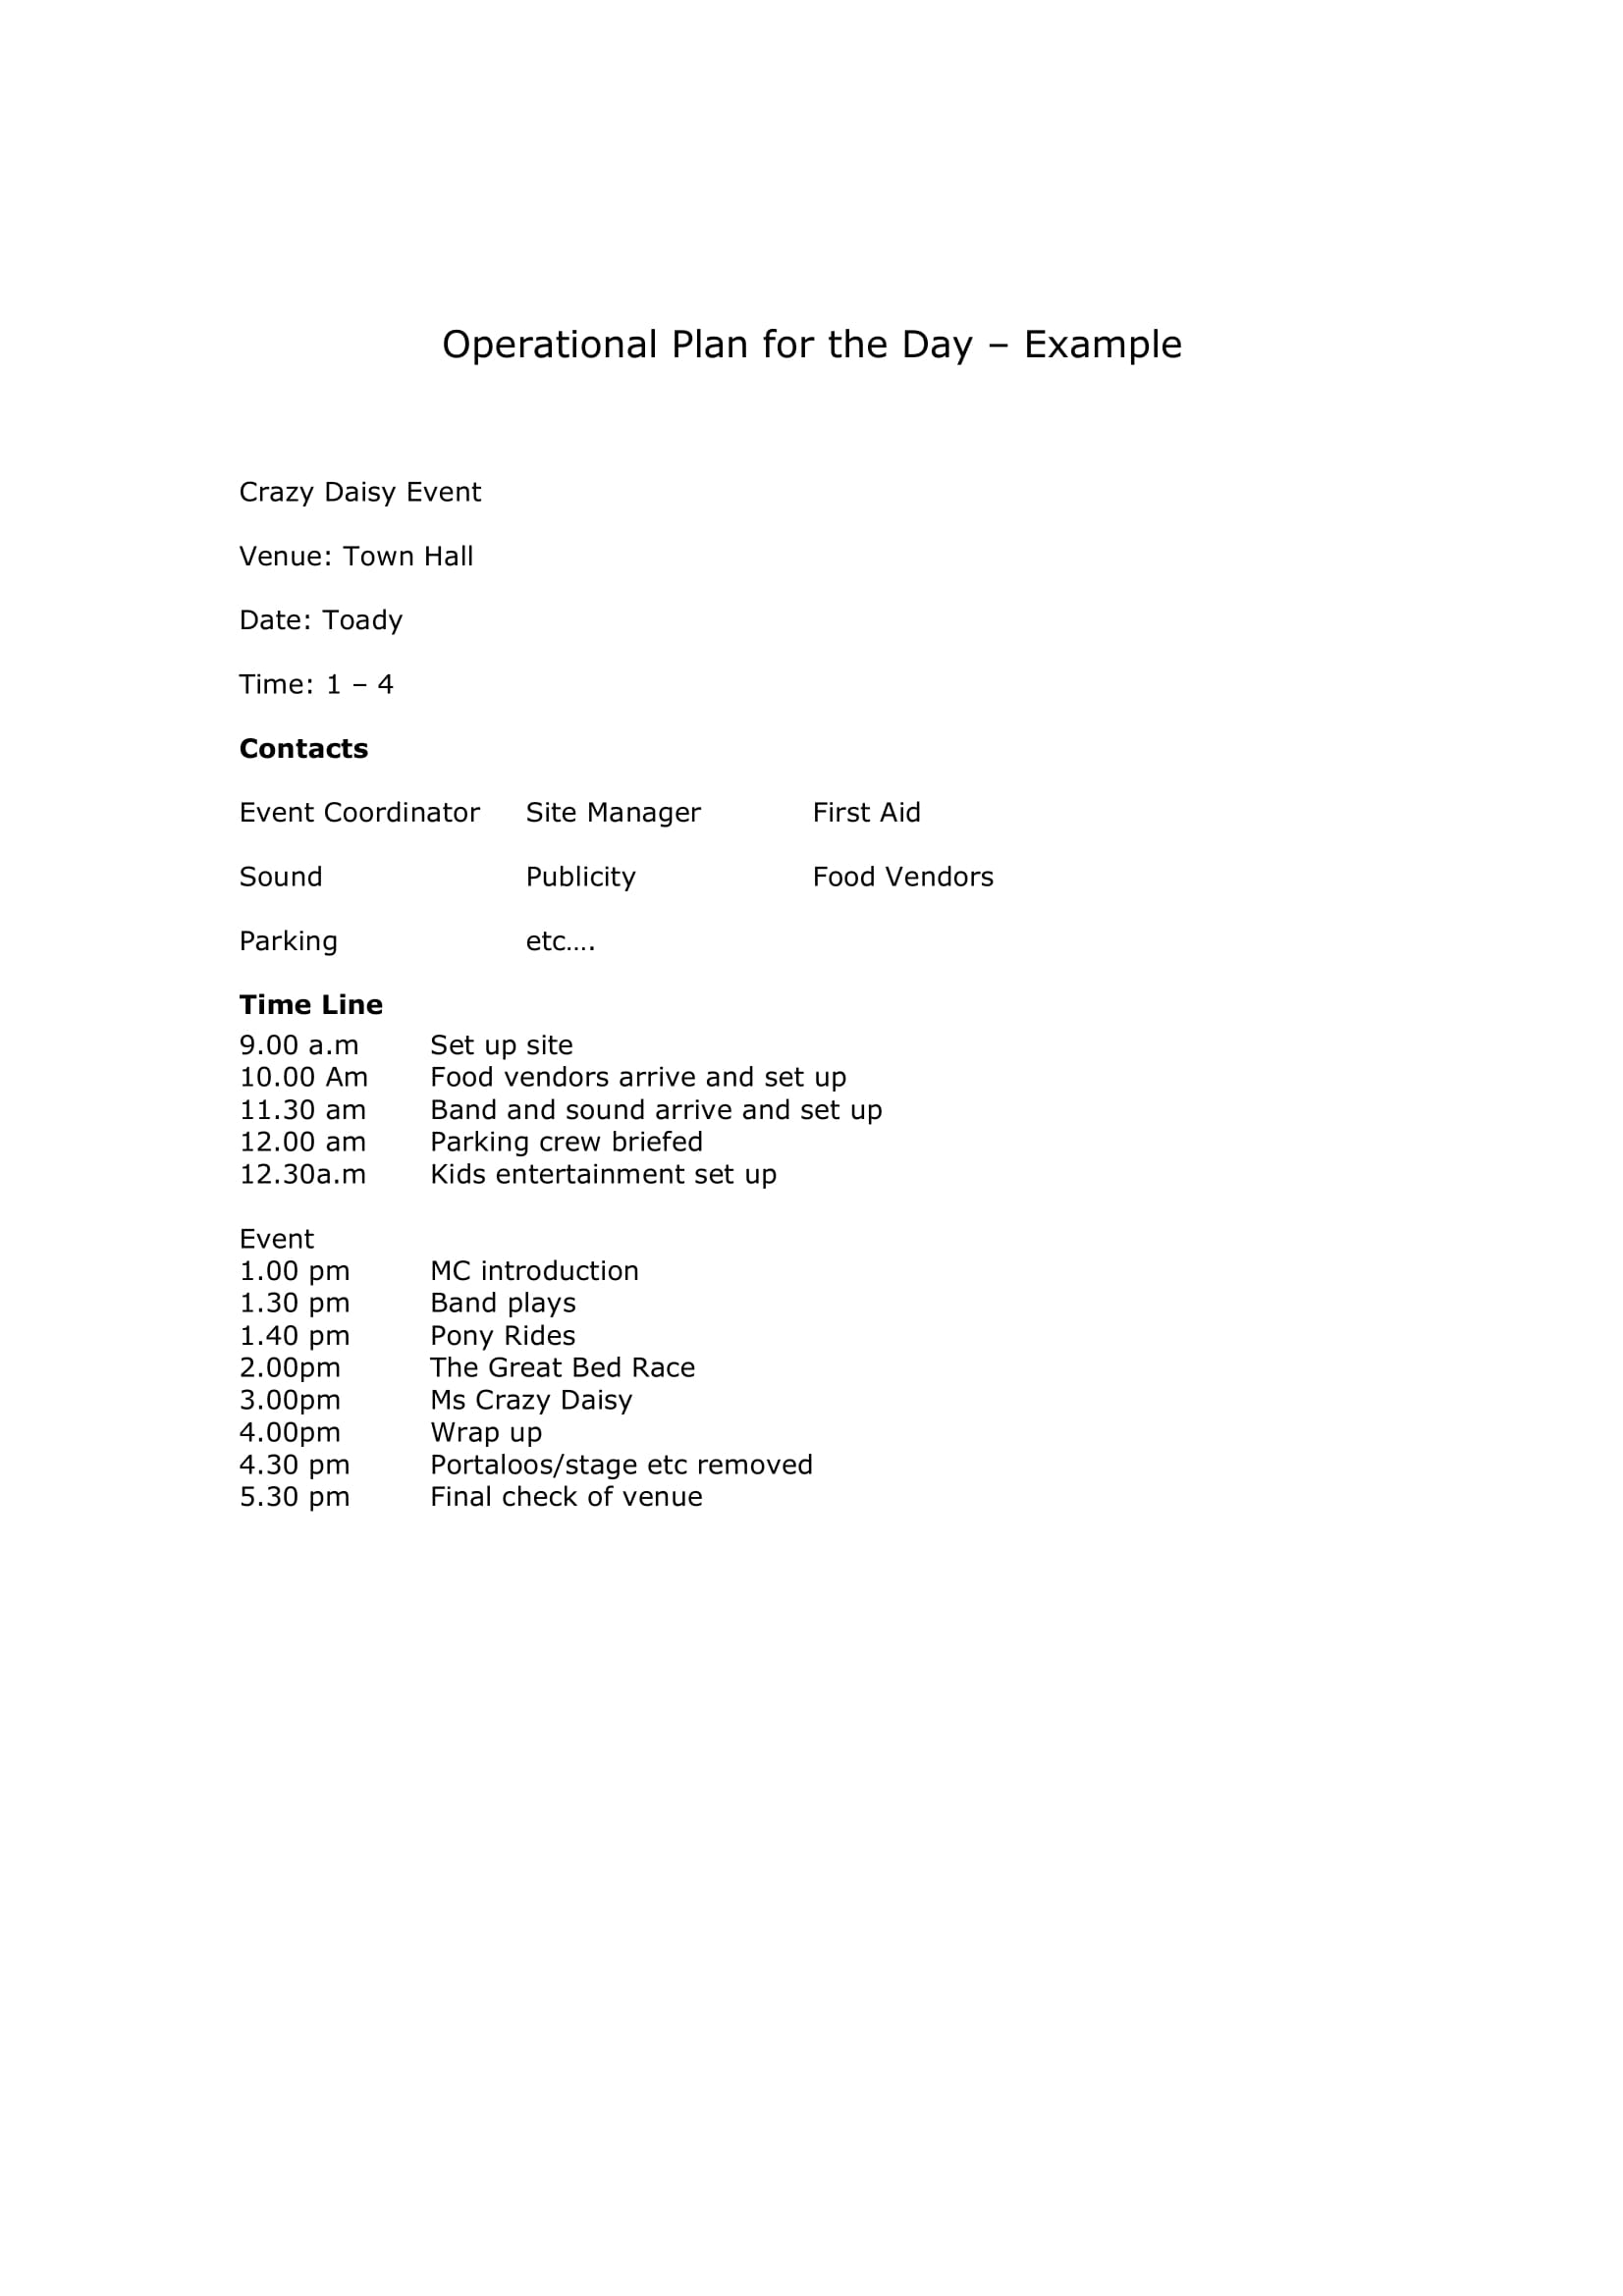 operational event plan for a day example 1